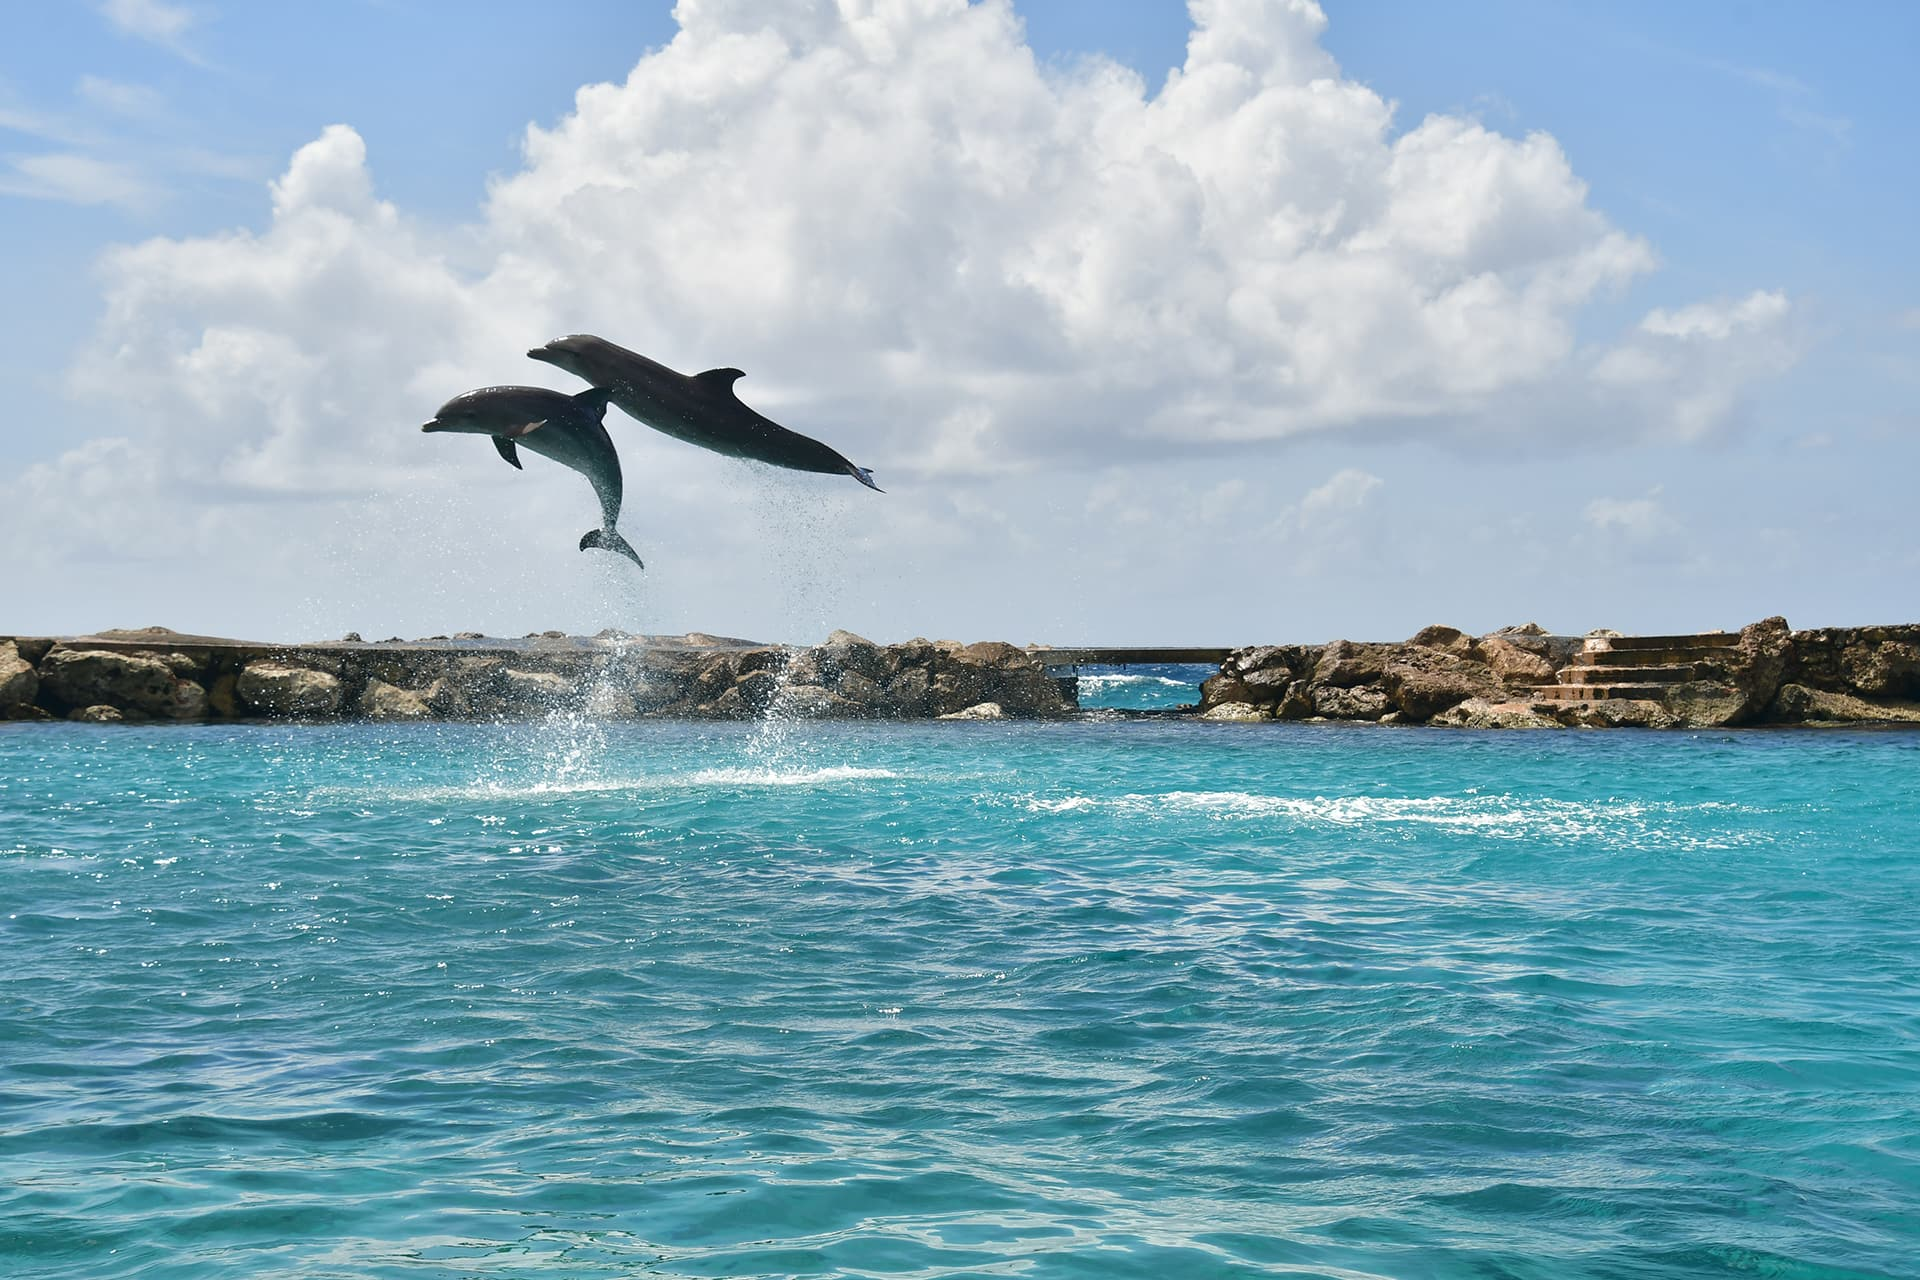 Two dolphins jumping extremely high out of the sea.